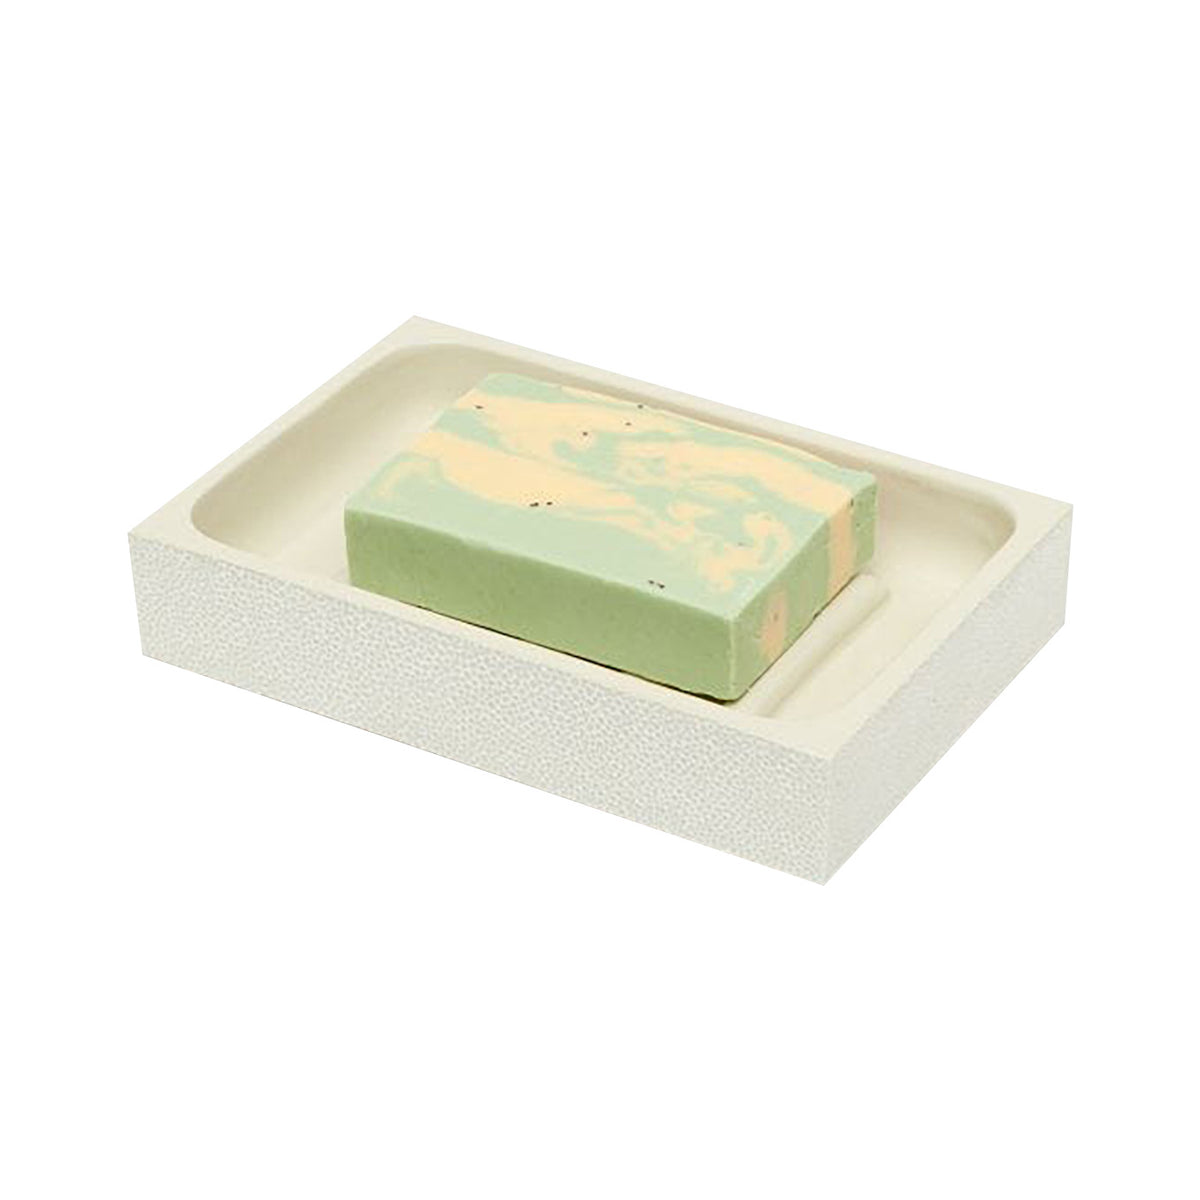 Pigeon & Poodle Manchester Shagreen Soap Dish, Snow